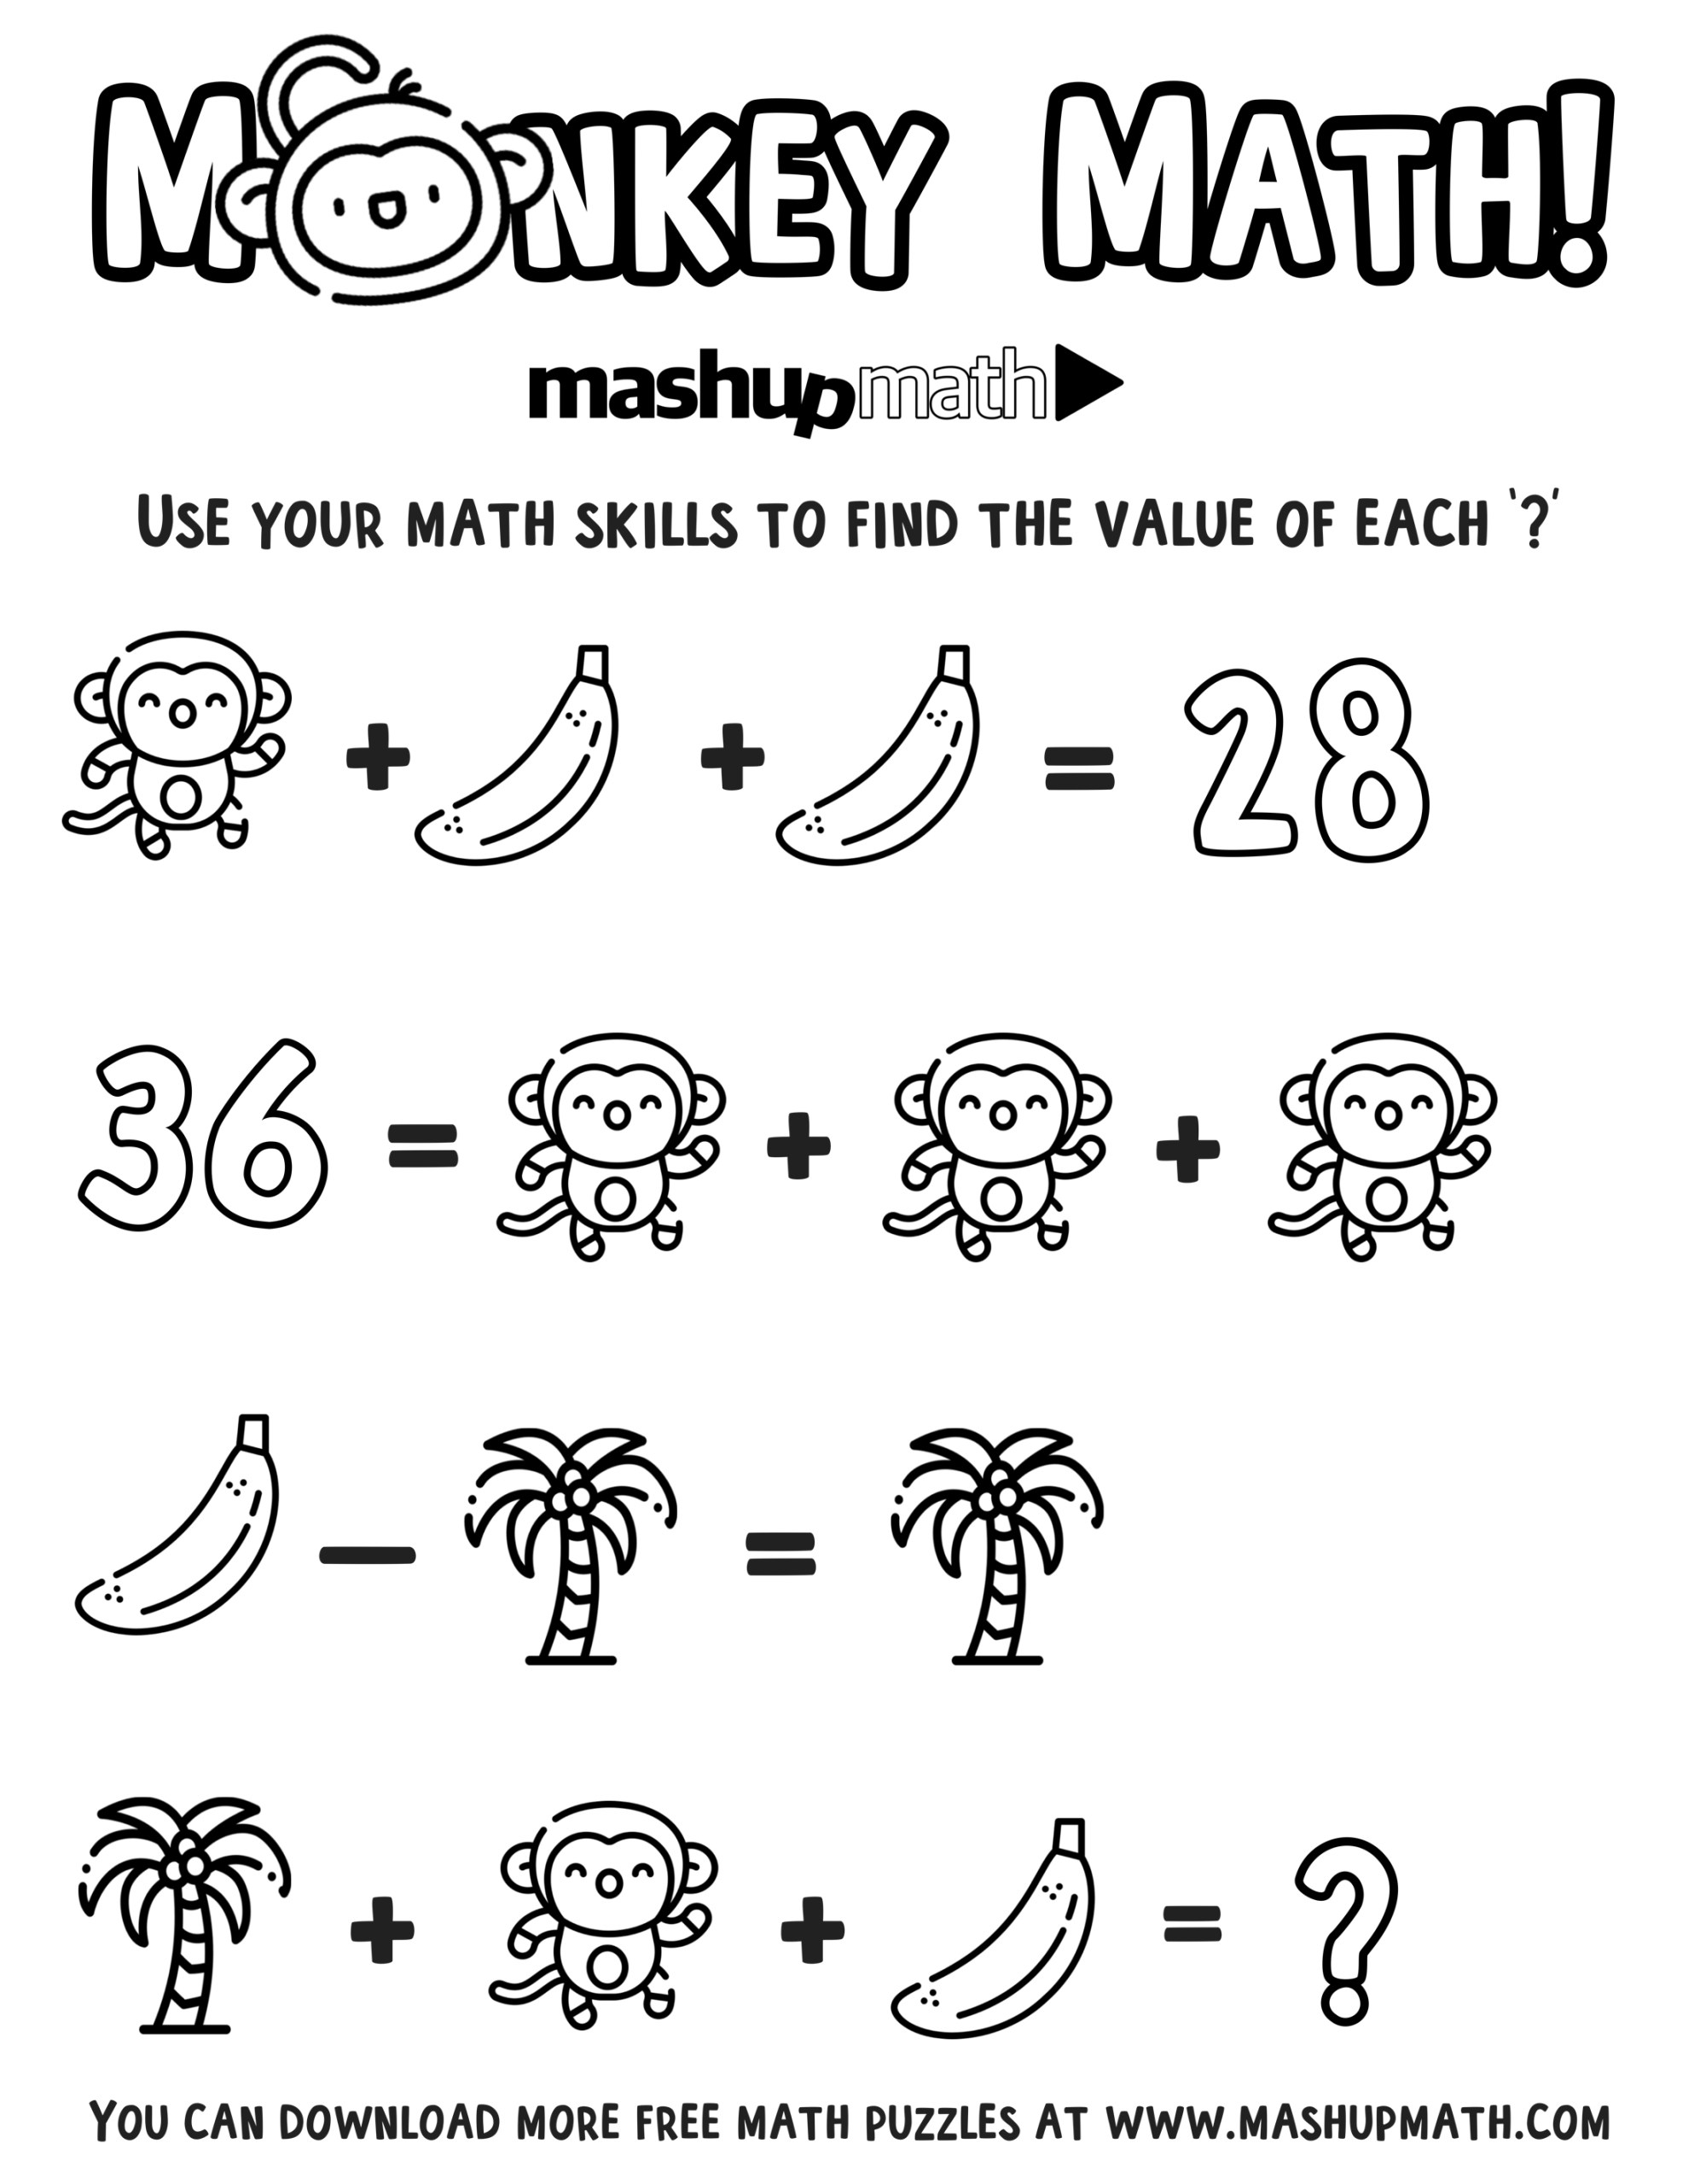 hight resolution of Free Math Coloring Worksheets for Grades 1-8 — Mashup Math